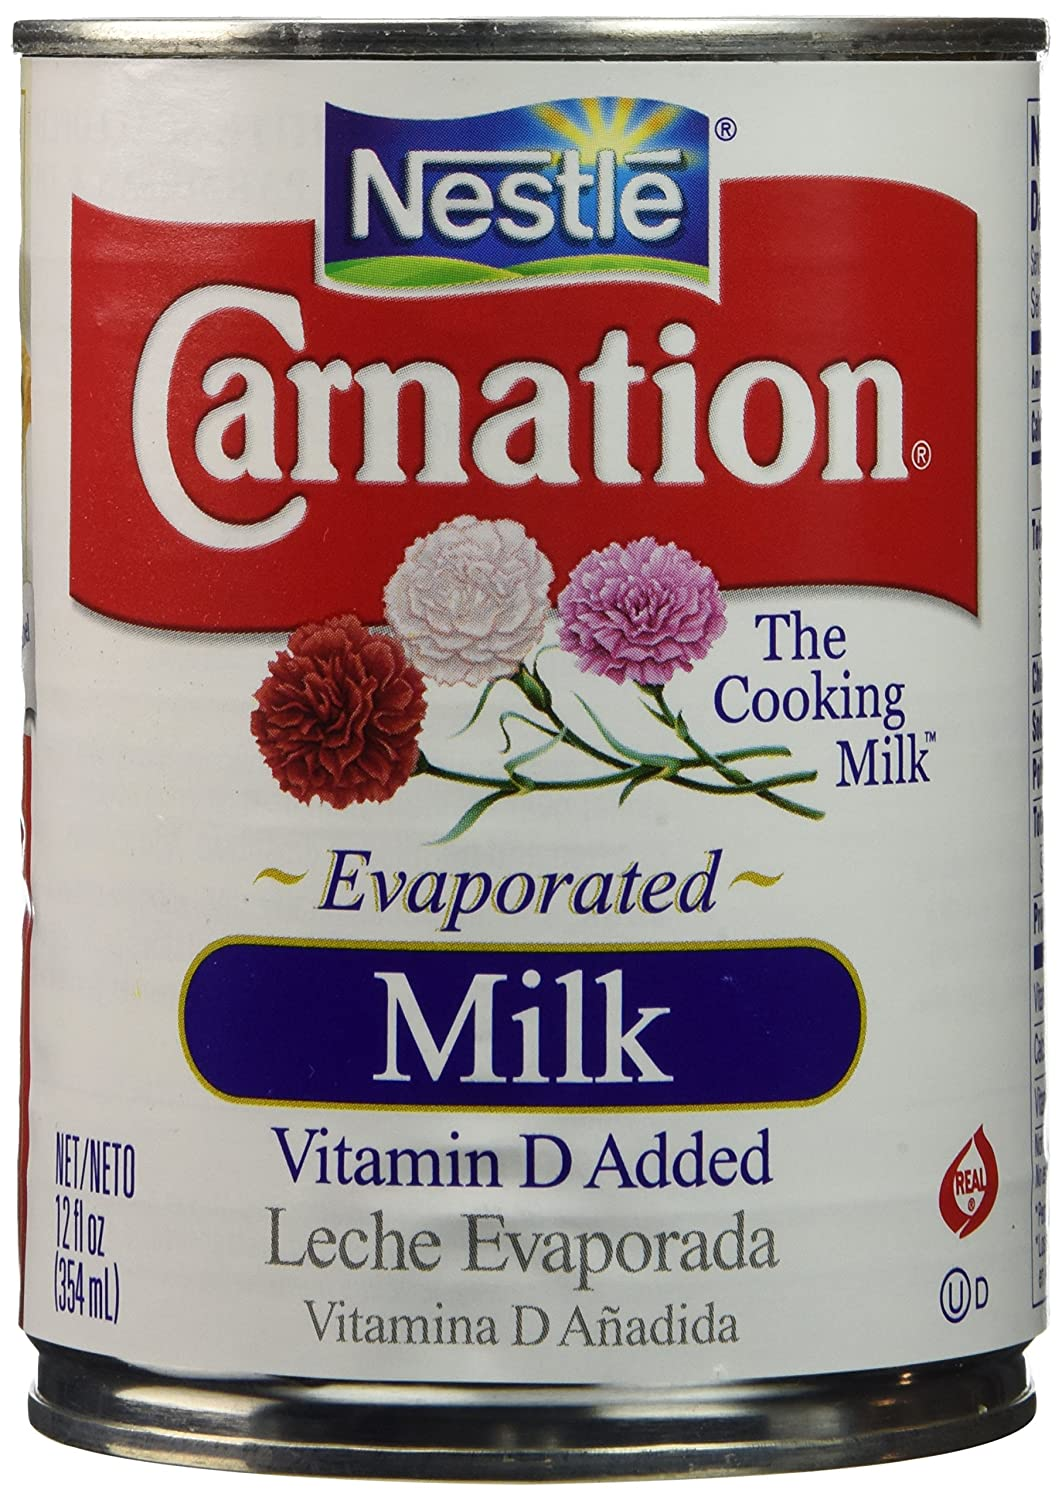 Amazon.com : Carnation Evaporated Milk, 12 Cout : Grocery & Gourmet Food